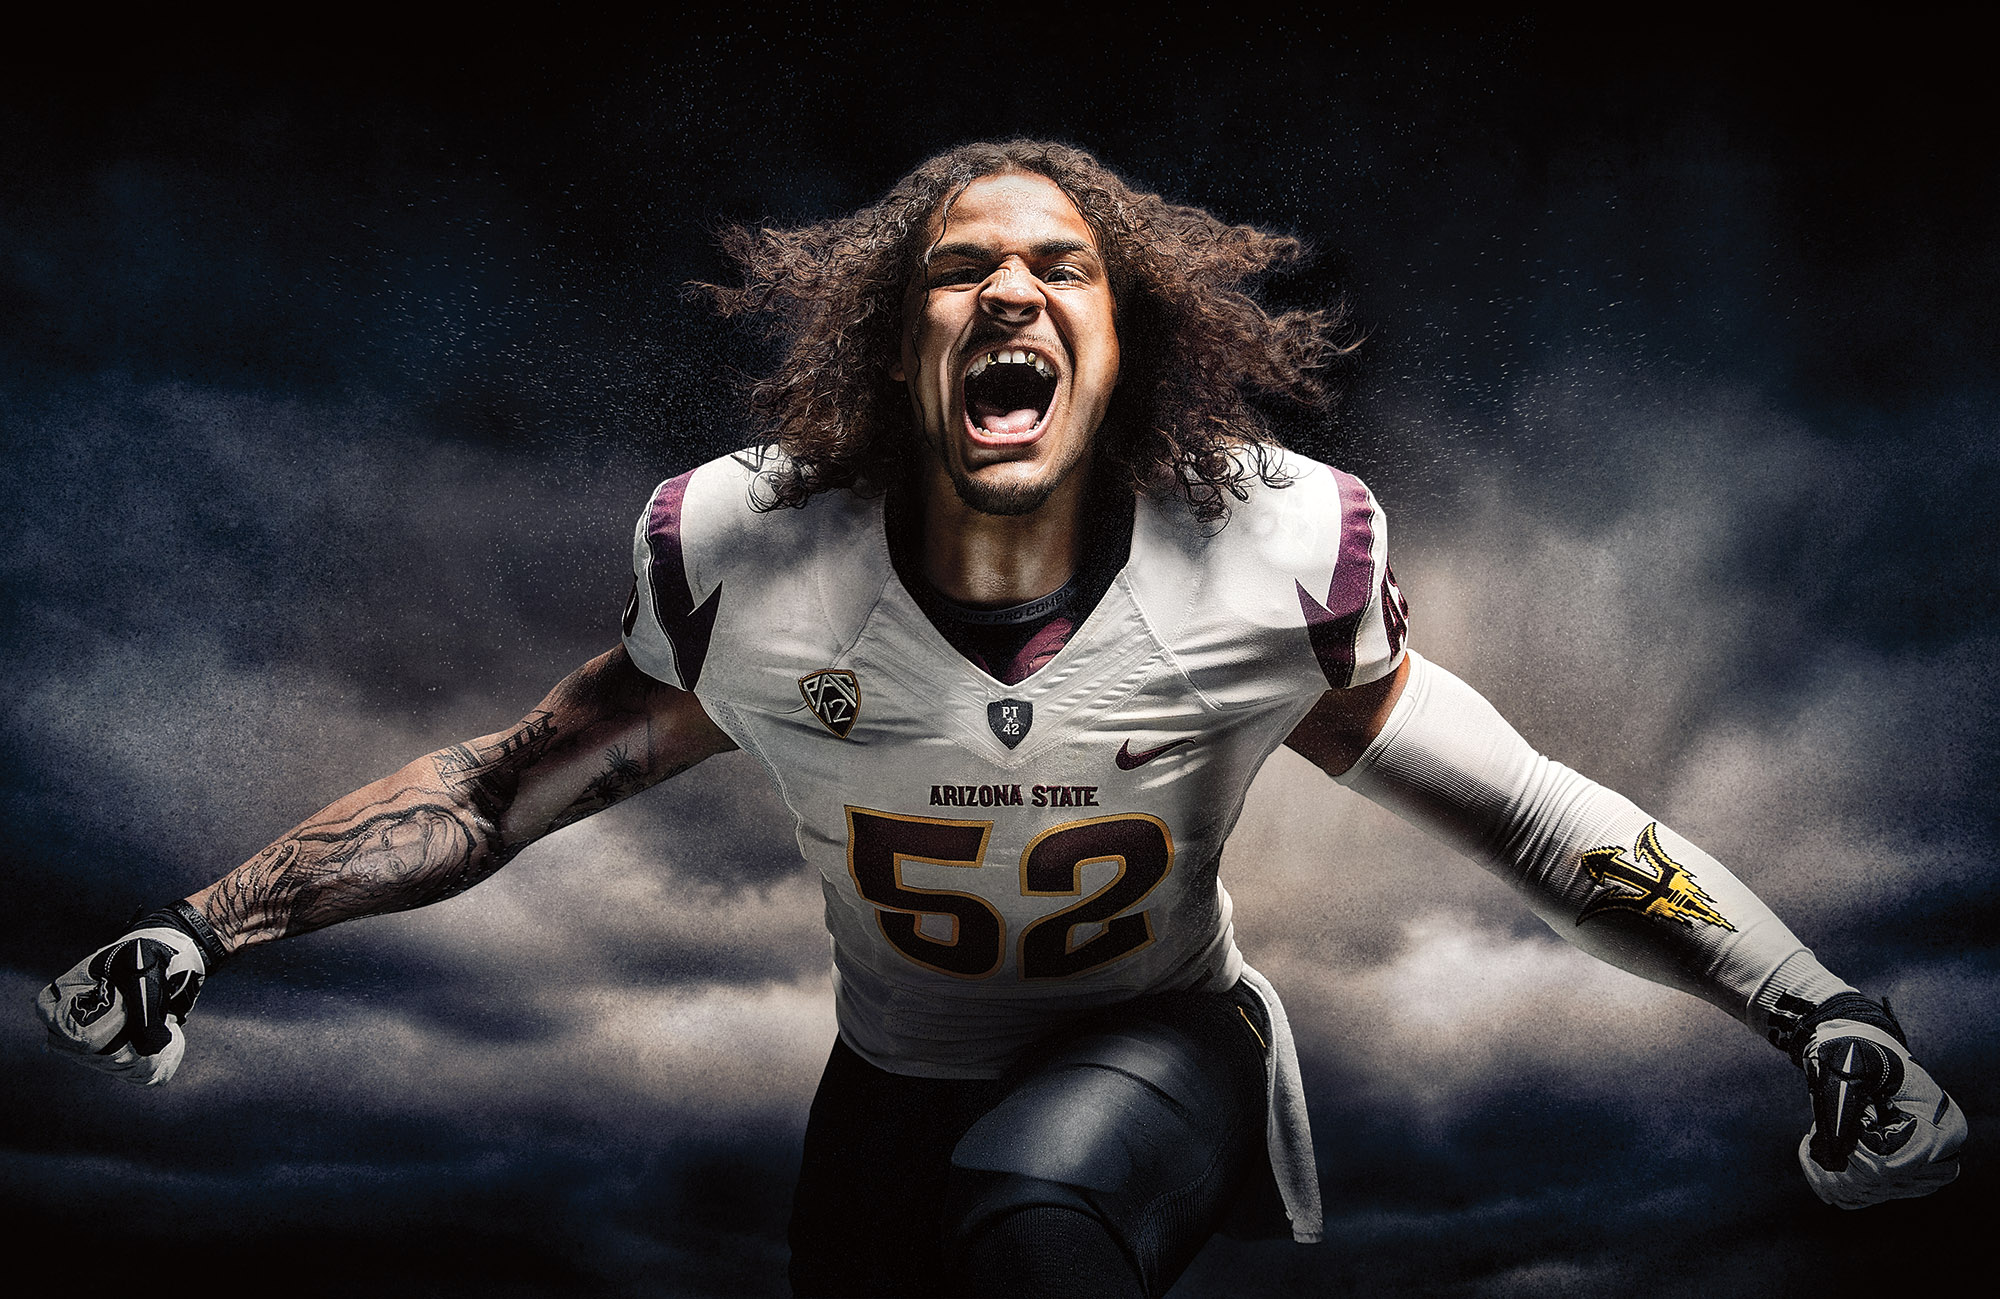 Arizona State Football campaign by Blair Bunting